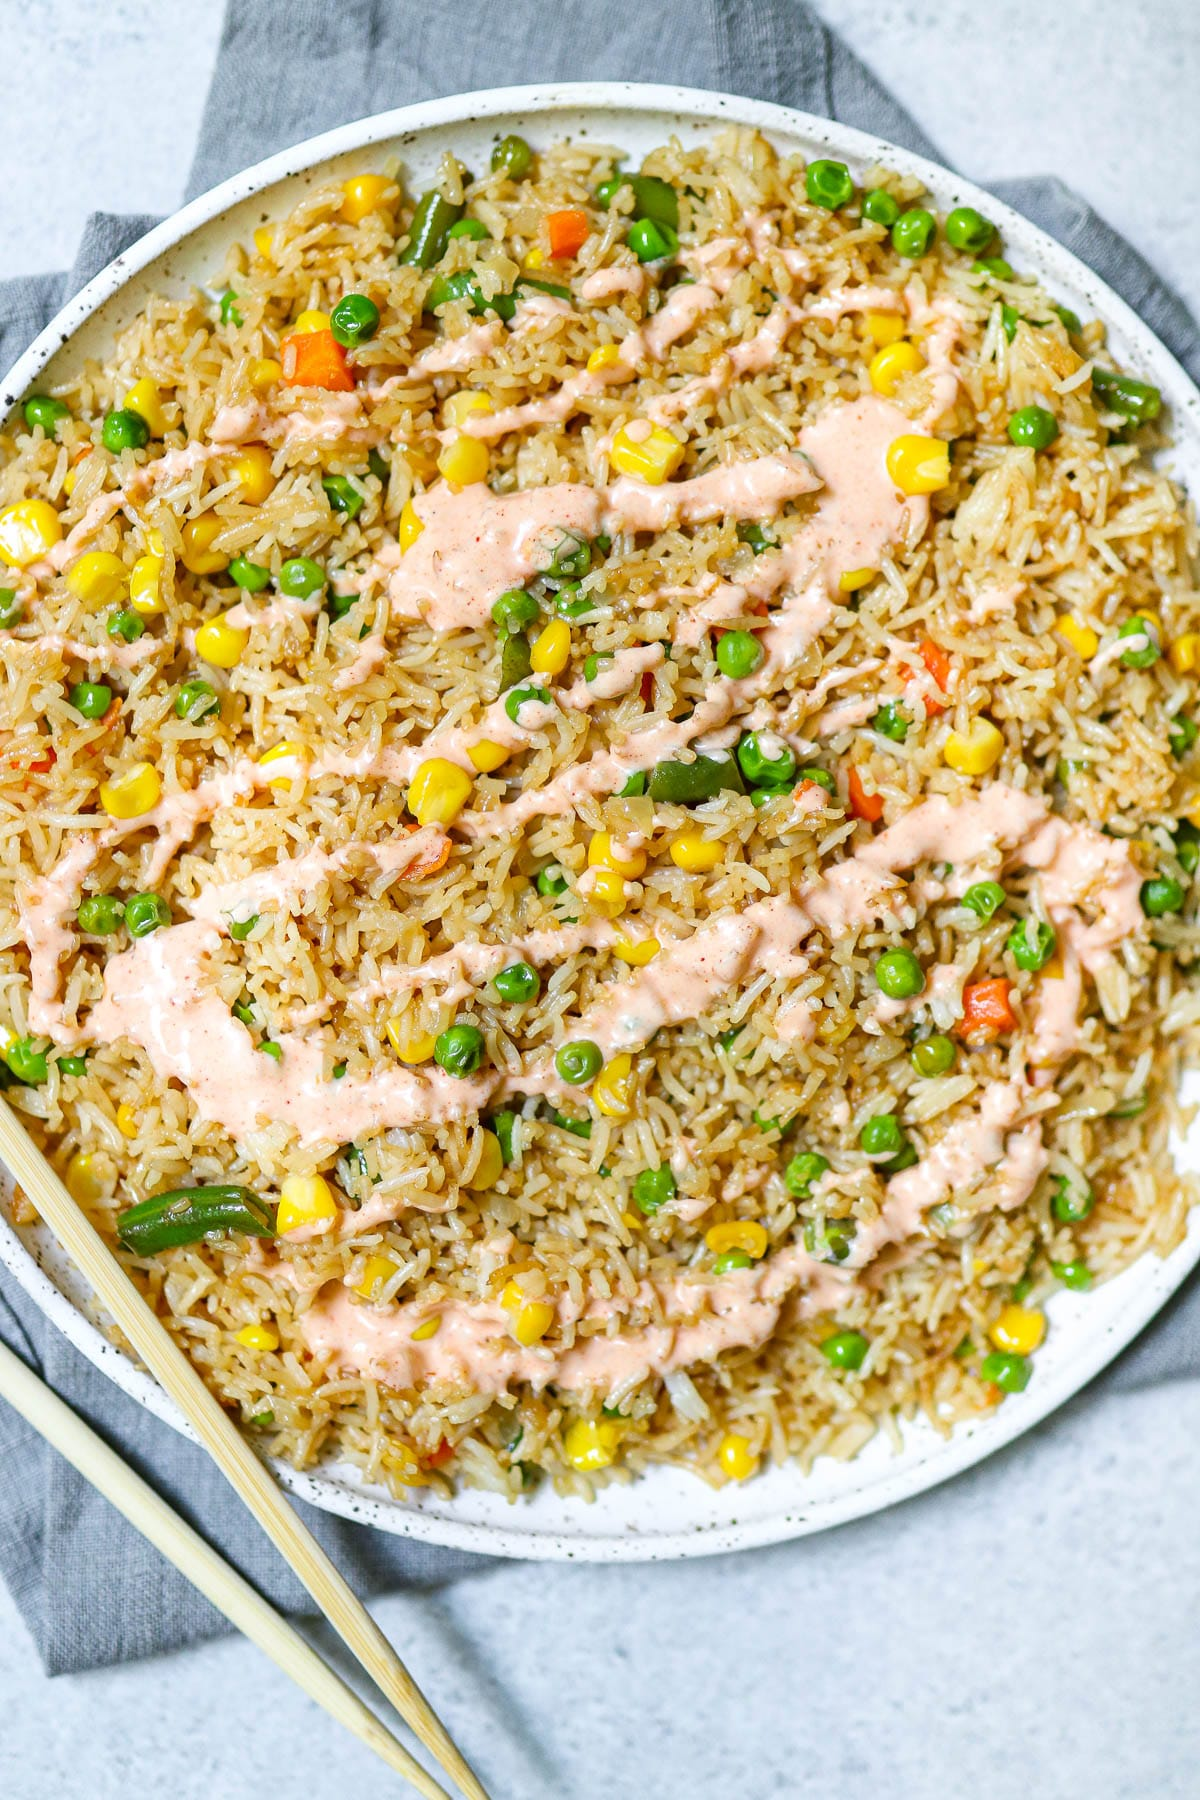 photo of cooked fried rice with sauce on top